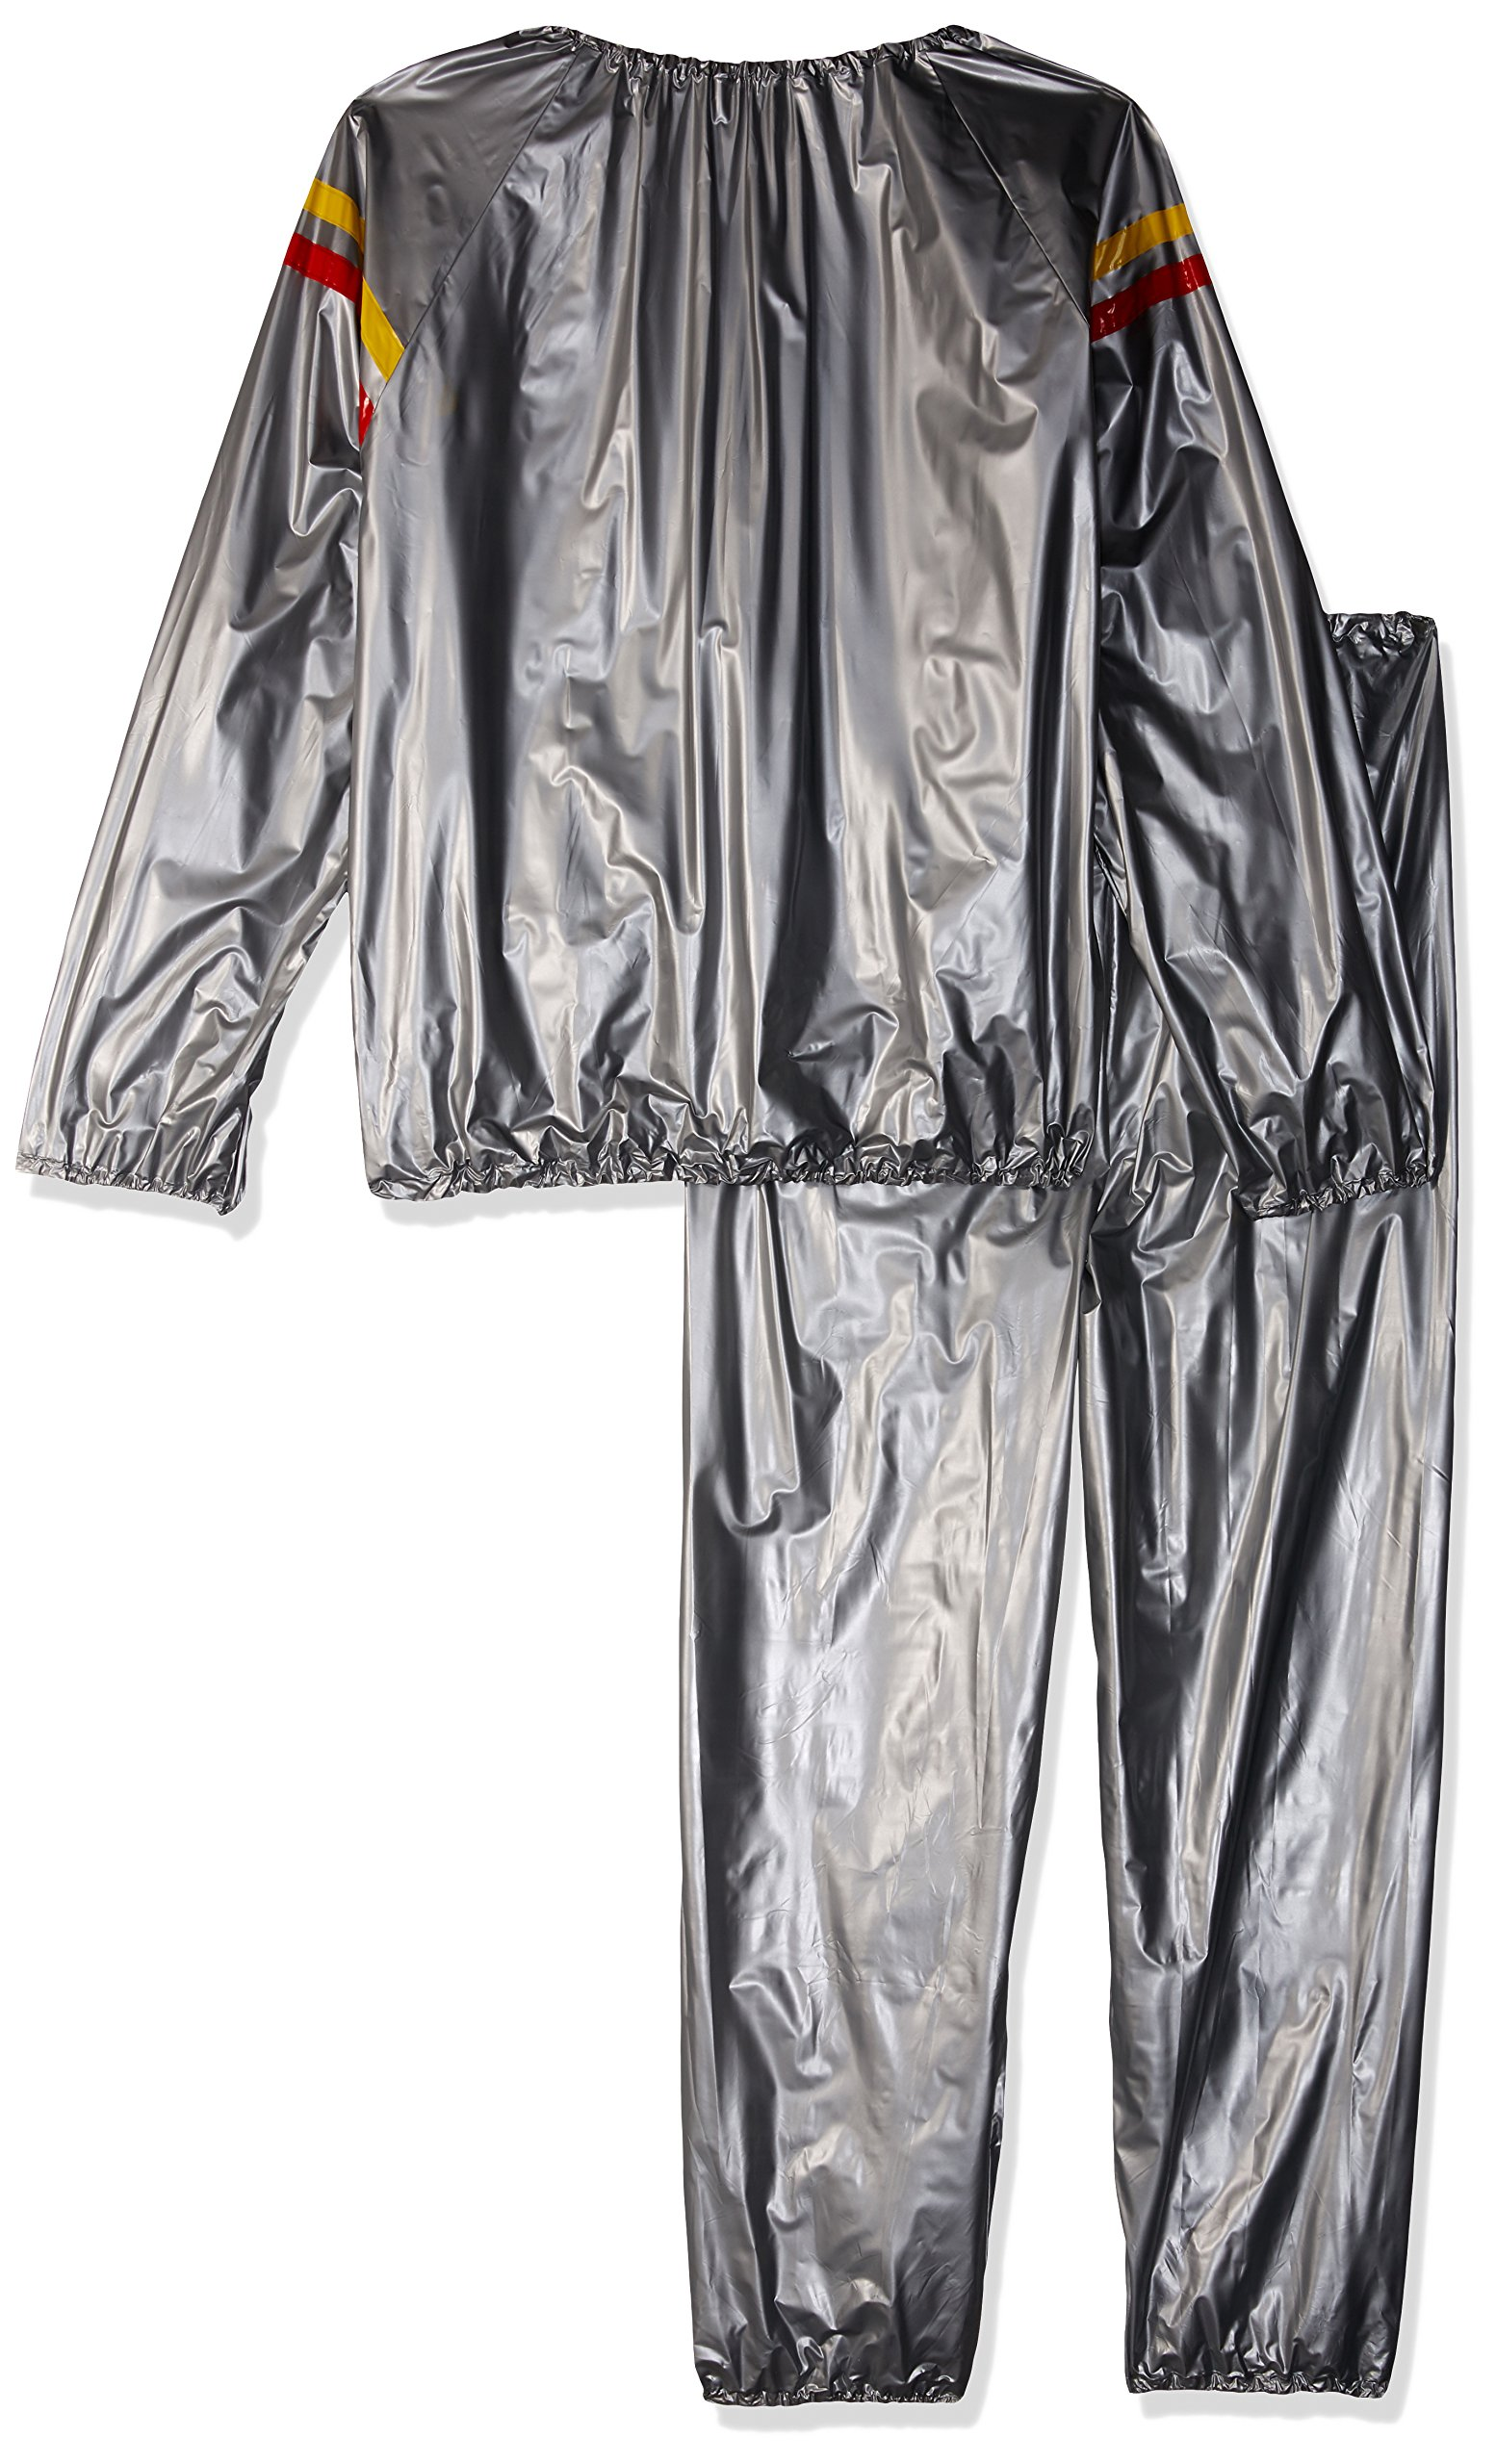 PU Health Pure Acoustics Weight Loss Sauna Suit Keeps Muscles Warm